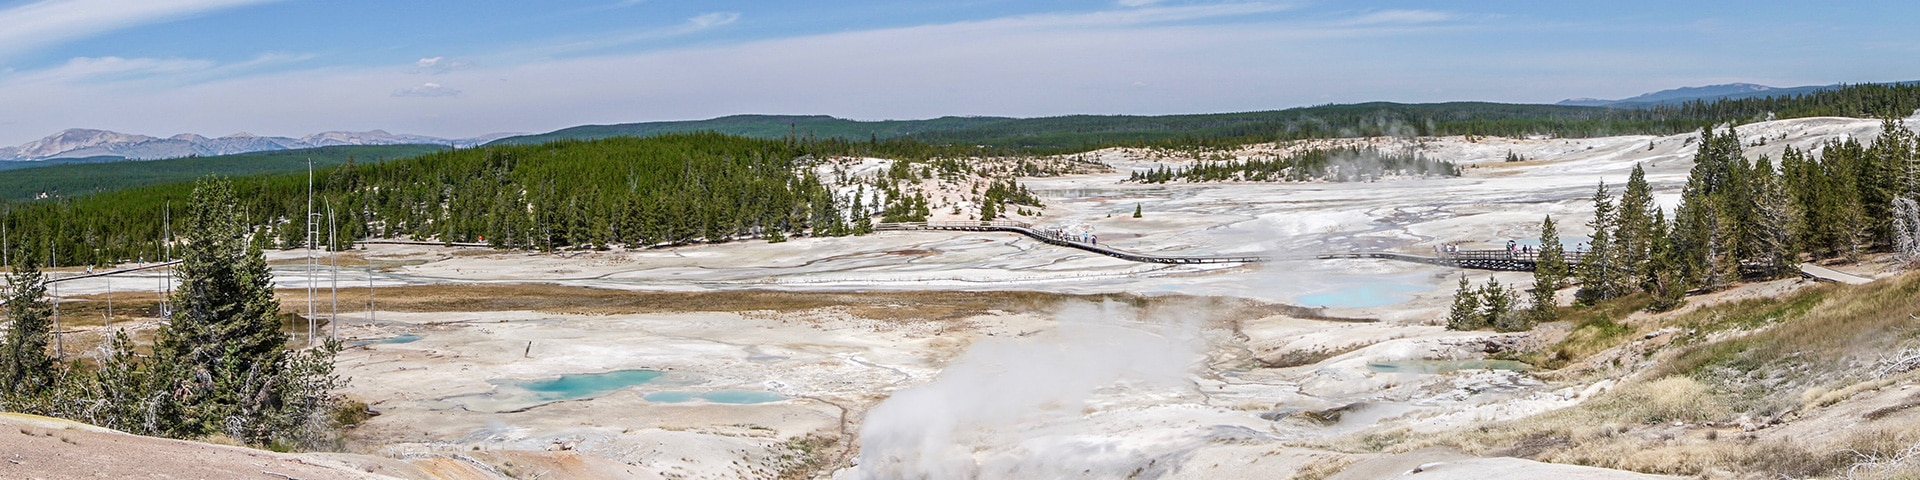 Trail of the Norris Geyser Hike in Yellowstone National Park